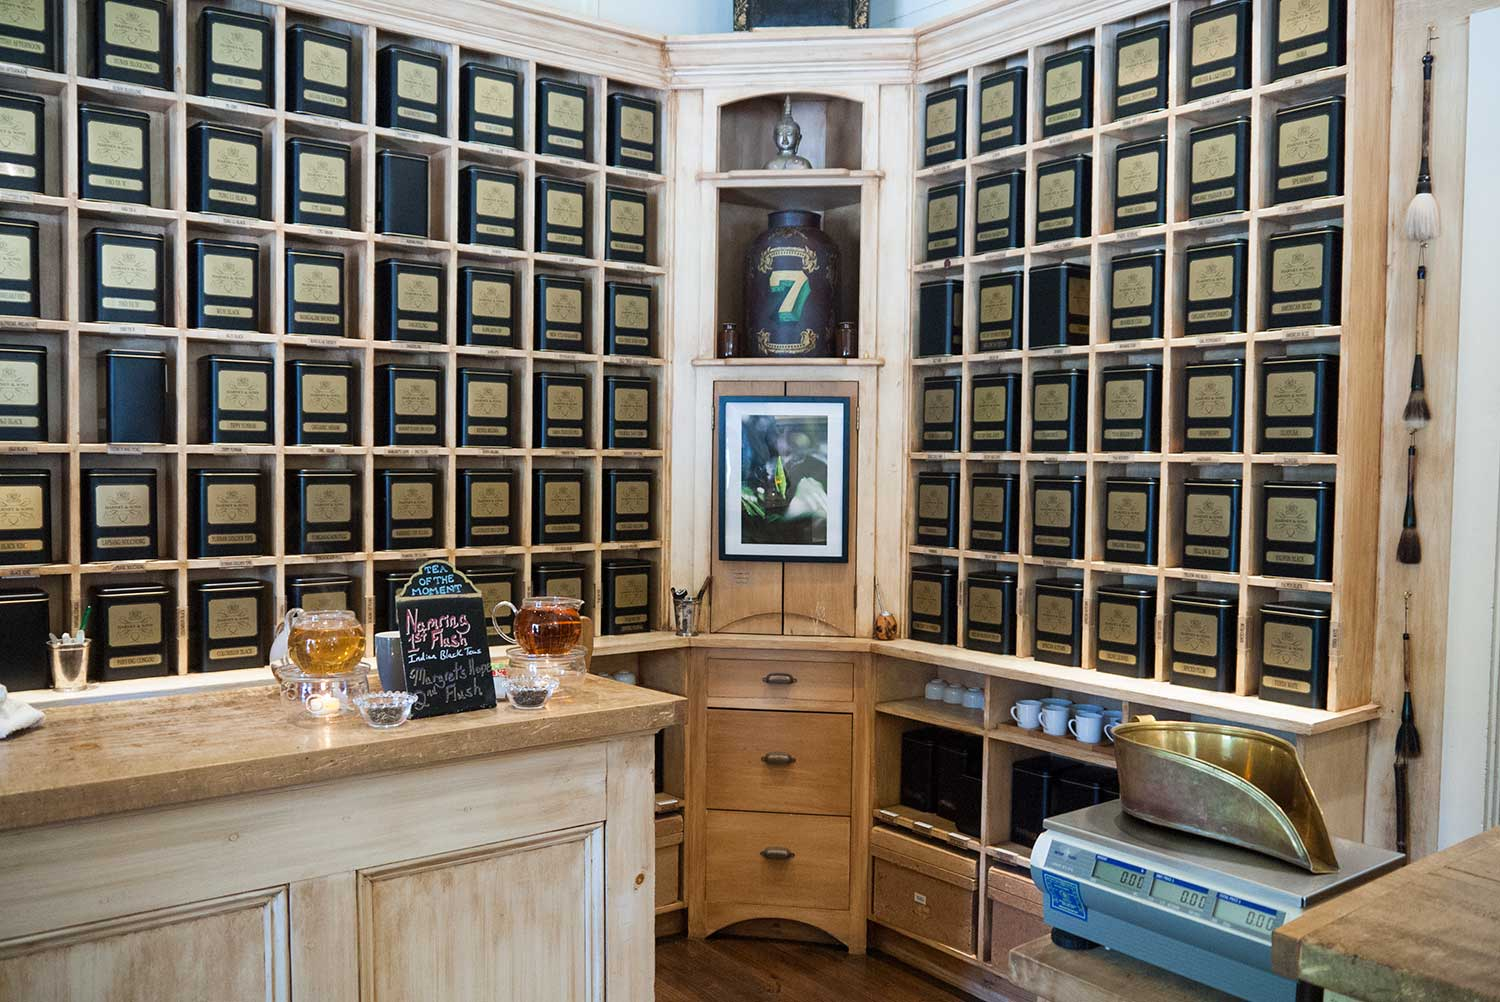 harney-and-sons-teas-wassaic.jpg